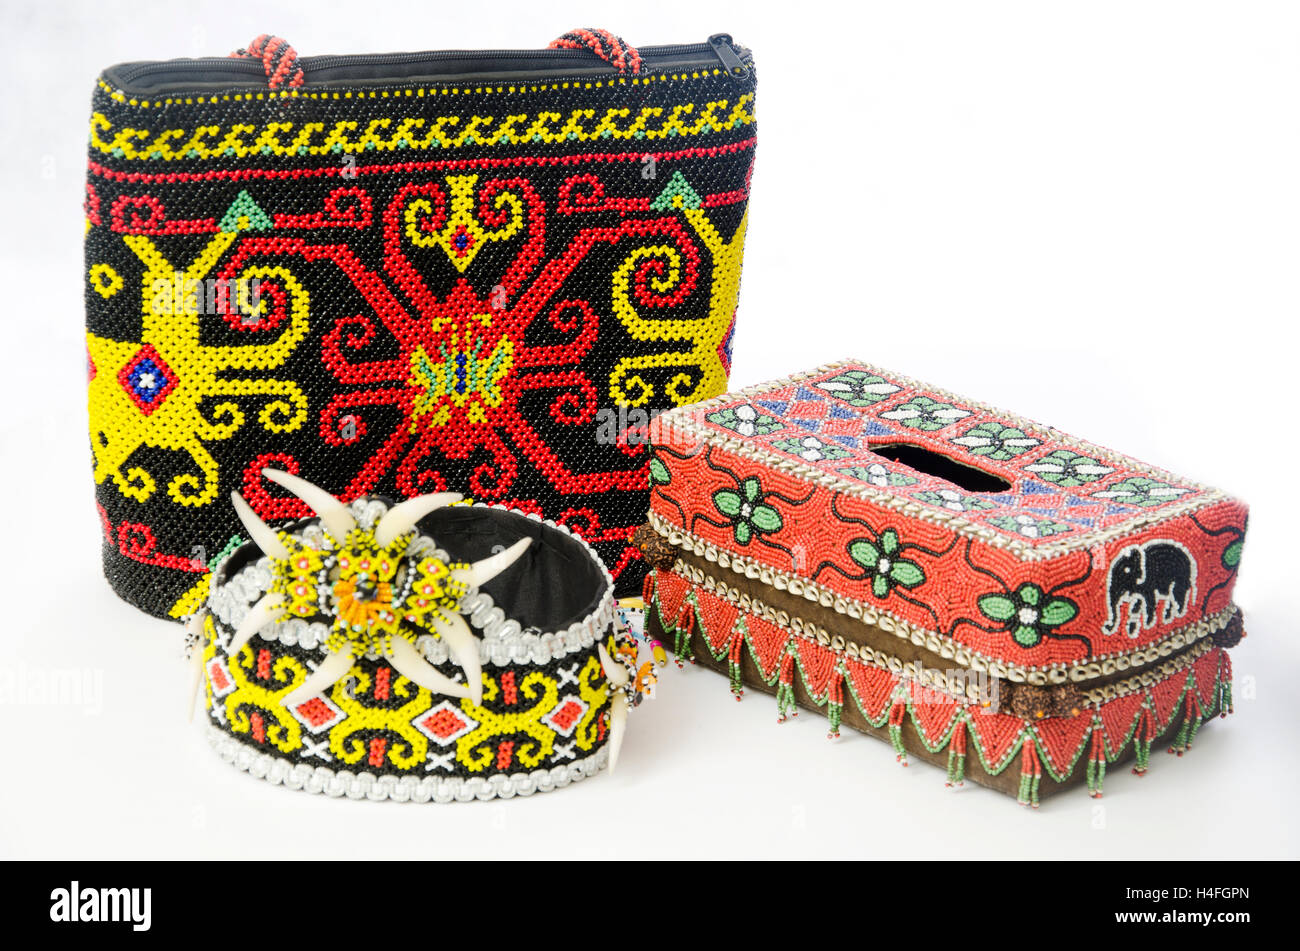 tissue box, woman bag, a crafting with dayak motif from kalimantan, Borneo, handmade crafting - Stock Image